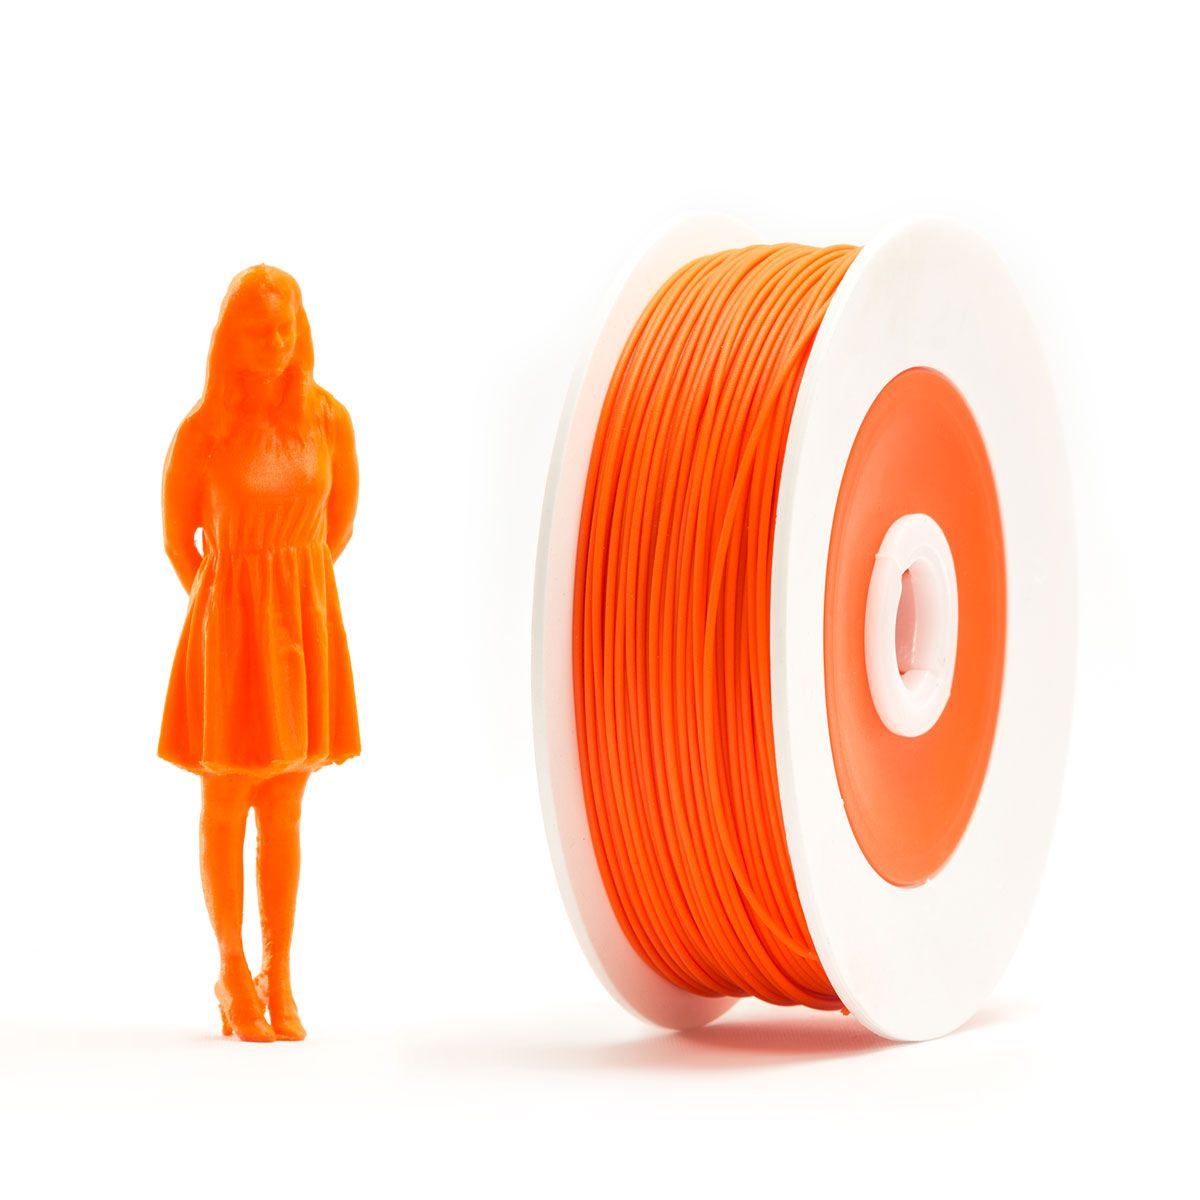 Pair of PLA spools: Orange and Grey